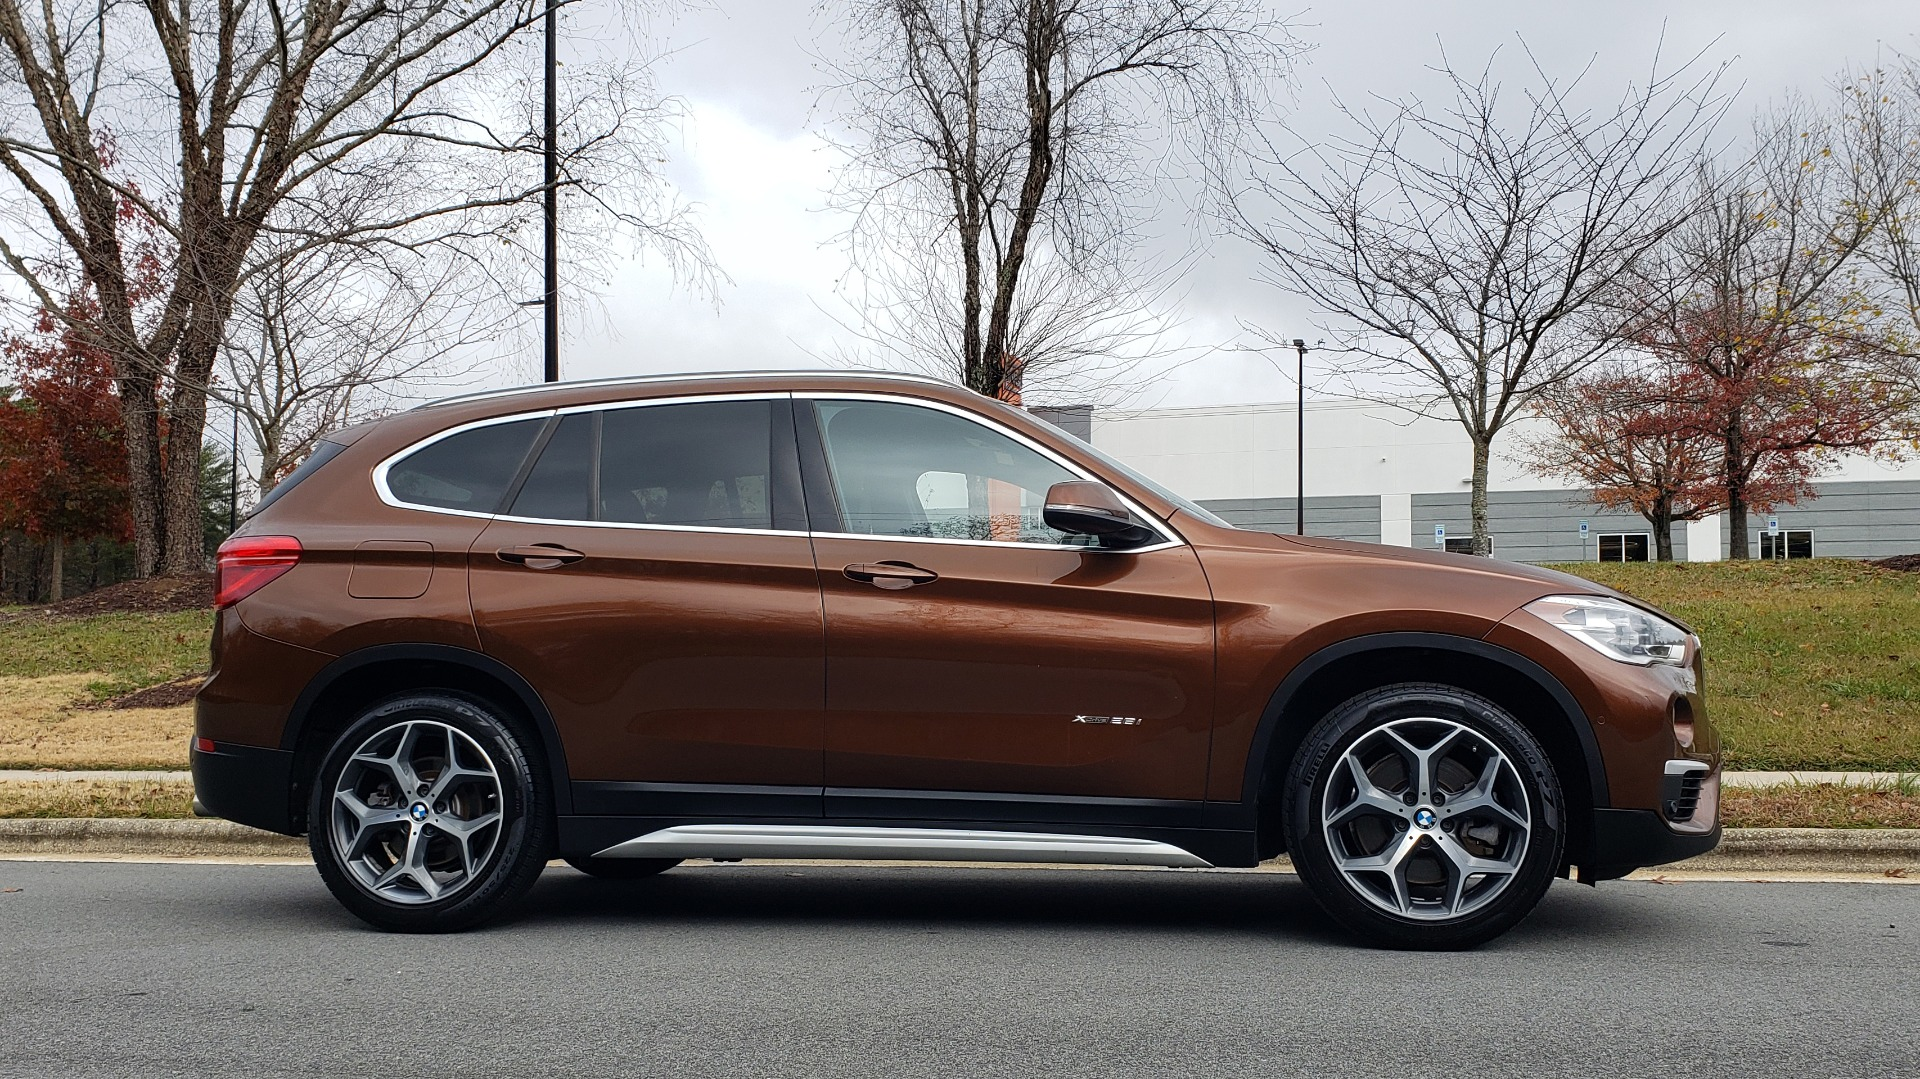 Used 2017 BMW X1 XDRIVE28I / PREM / TECH / DRVR ASST / COLD WTHR / REARVIEW for sale Sold at Formula Imports in Charlotte NC 28227 5